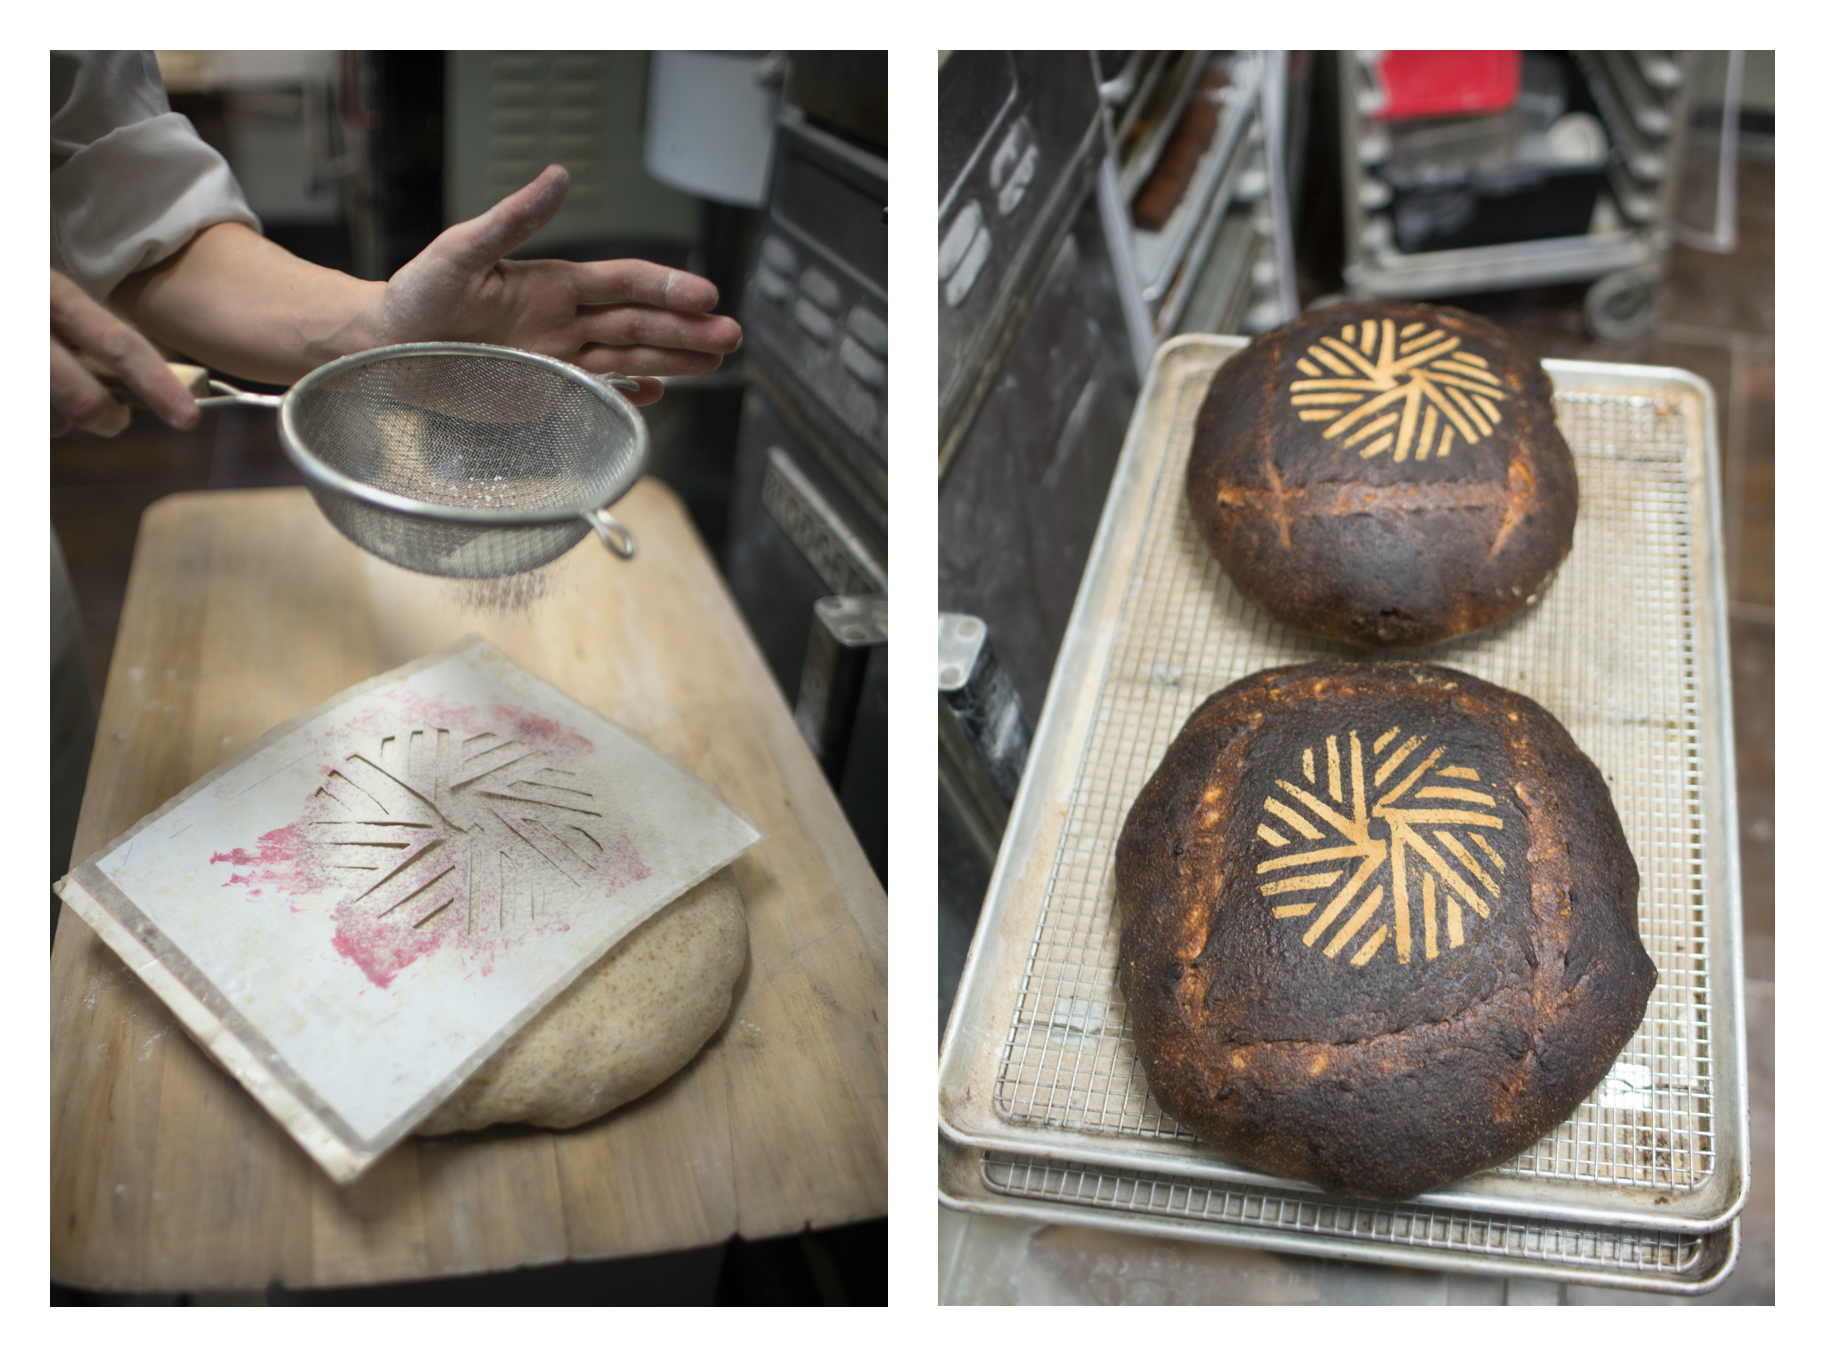 Runner and Stone bakery with fresh backed boule feature the millstone branding.